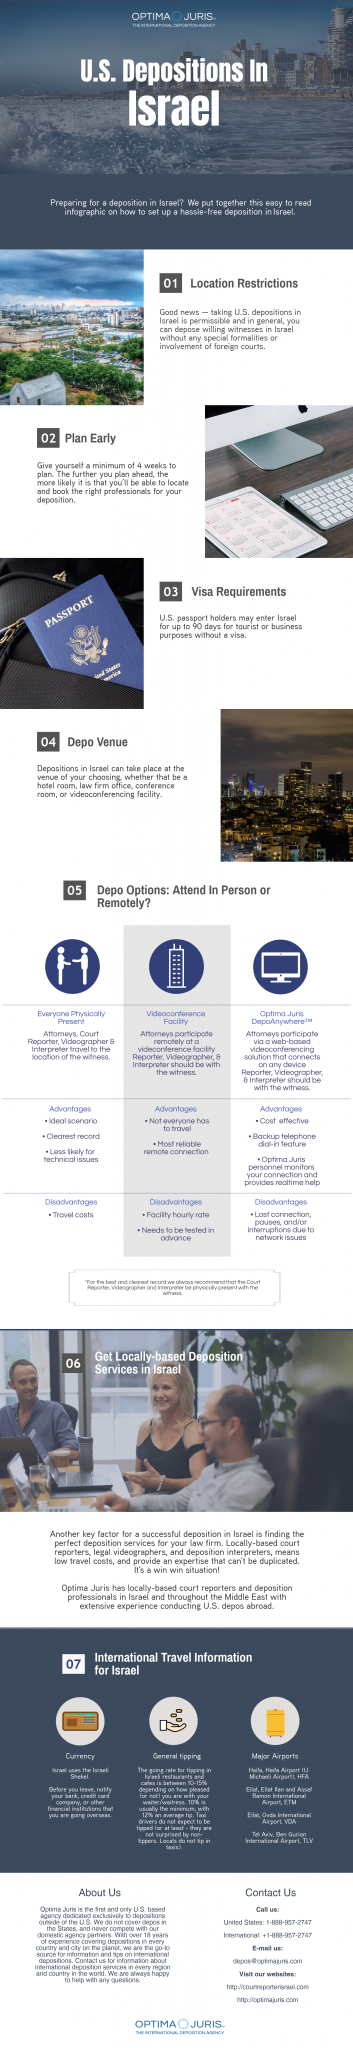 7 Tips To Know Before Scheduling a Deposition in Israel-infographic